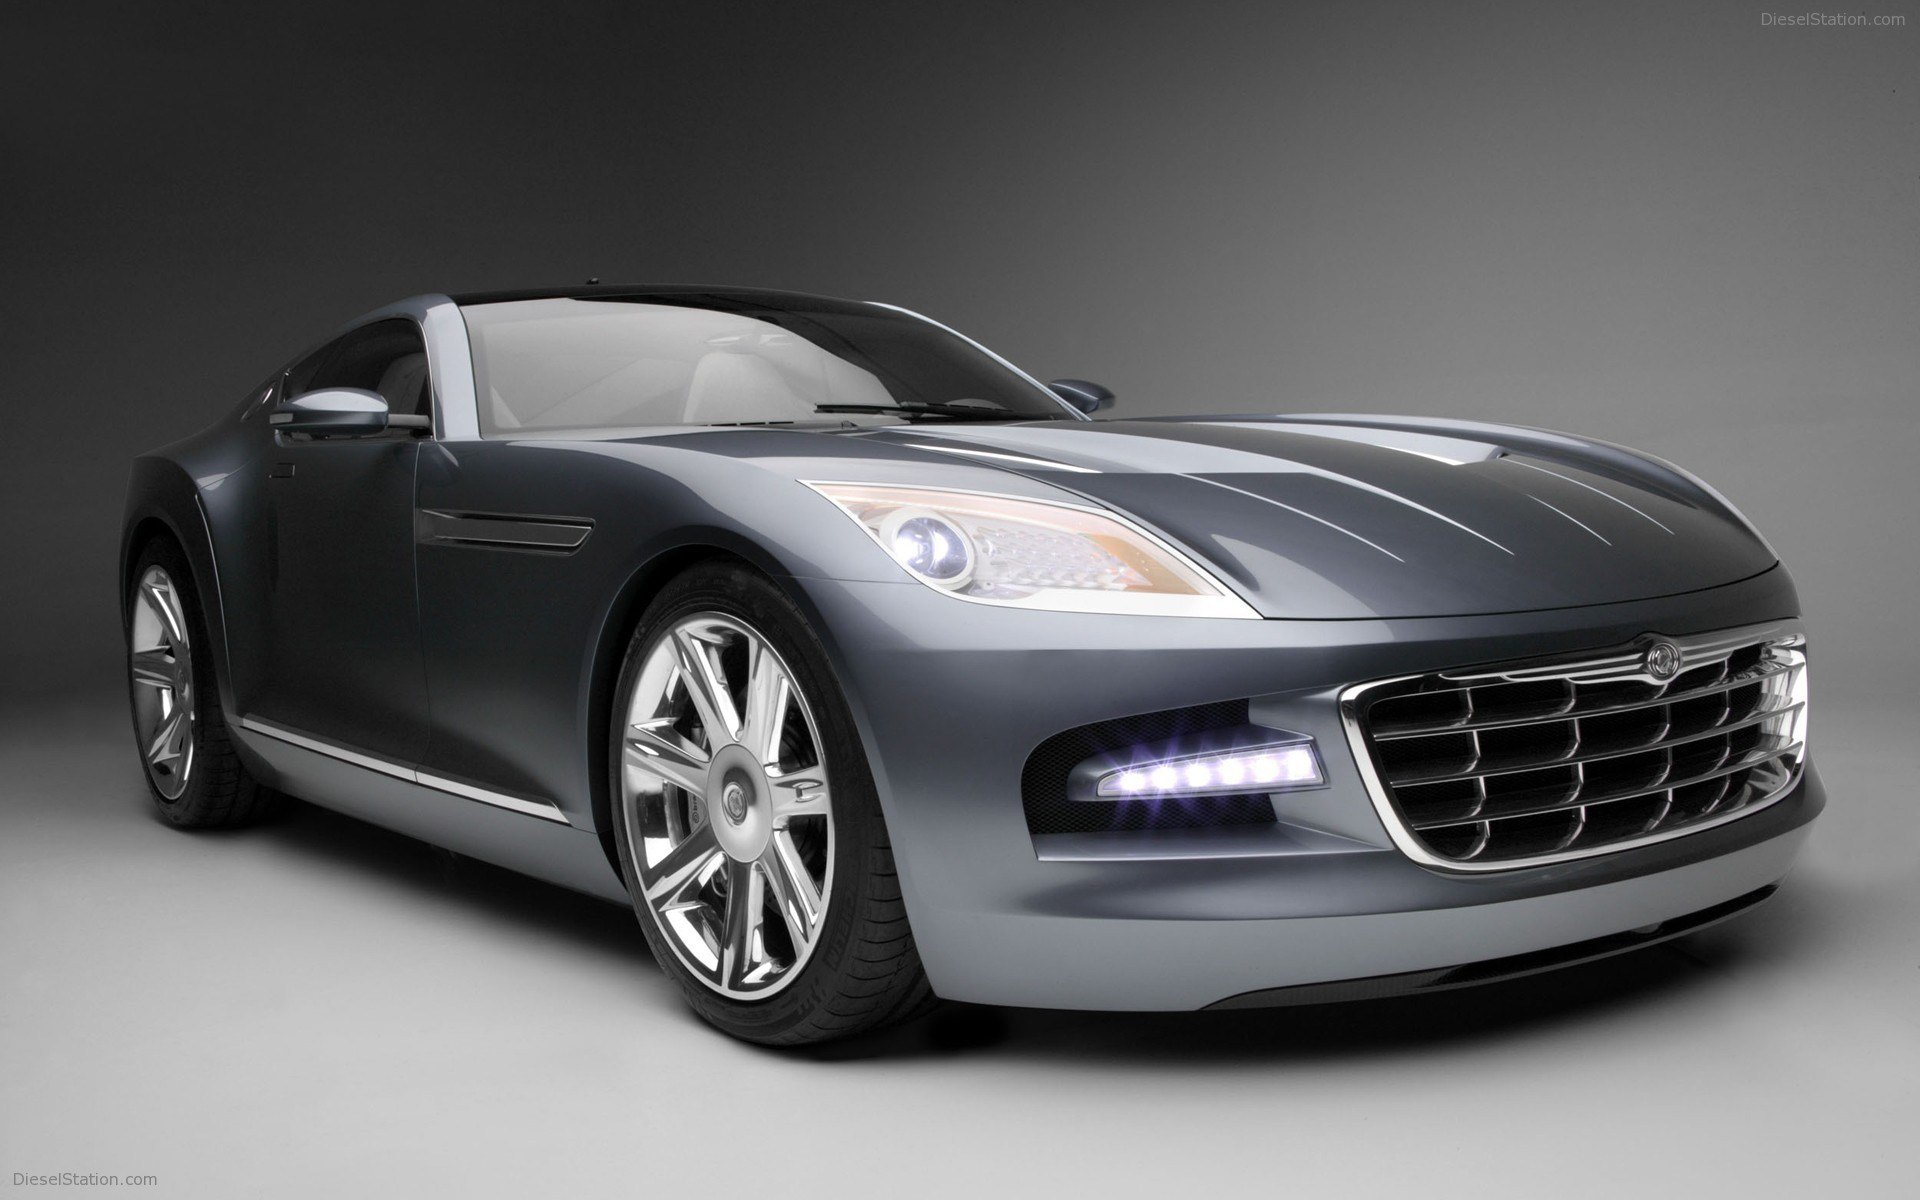 Latest Chrysler Firepower Concept Widescreen Exotic Car Image Free Download